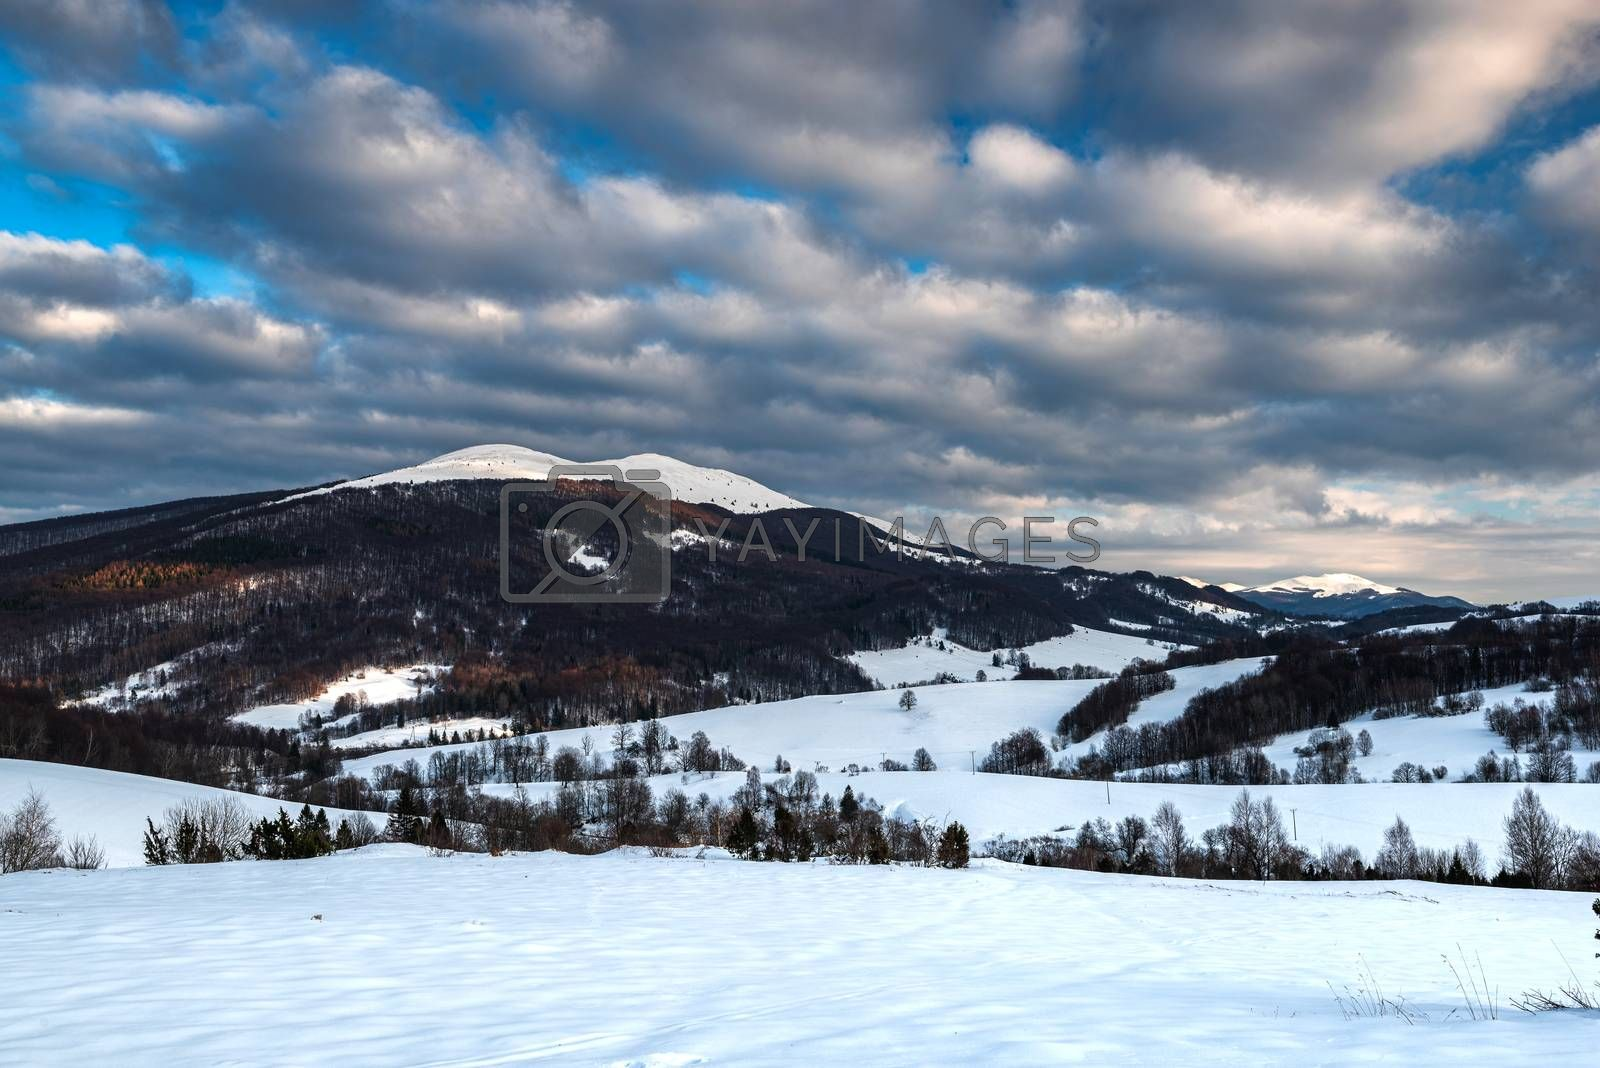 Cloudscape at Wetlina in Bieszczady Mountains, Poland at Winter  by merc67